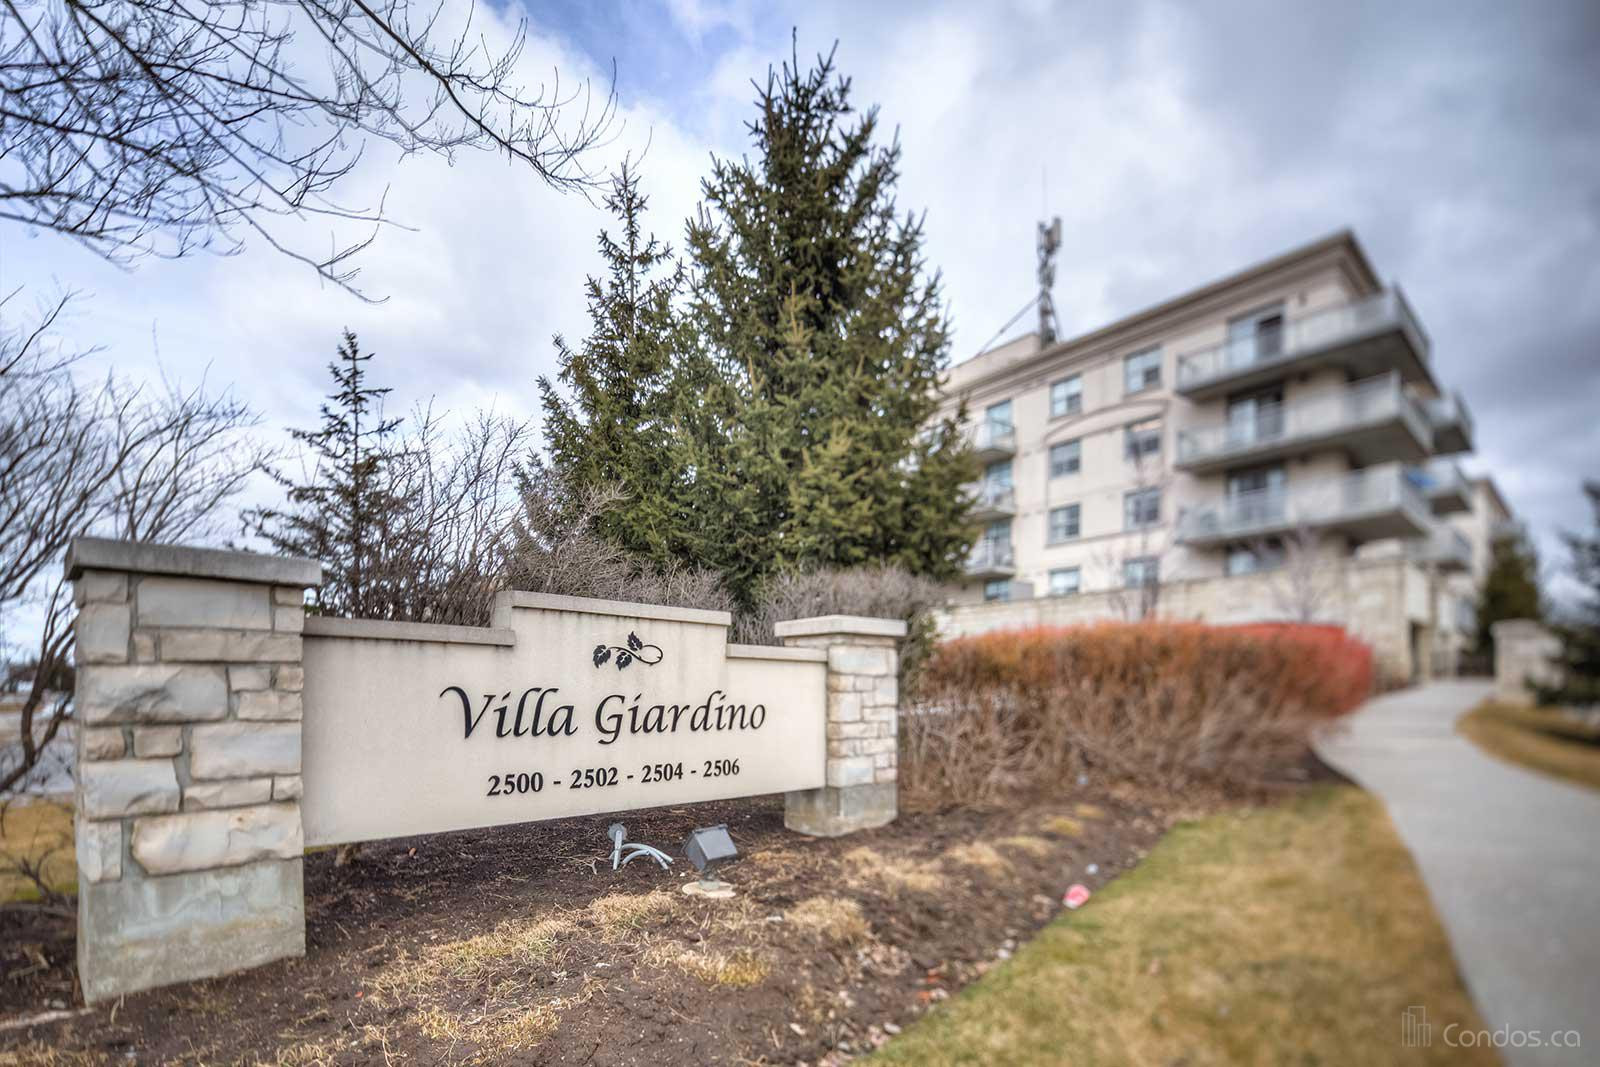 Villa Giardino Ⅱ at 2504 Rutherford Rd, Vaughan 0